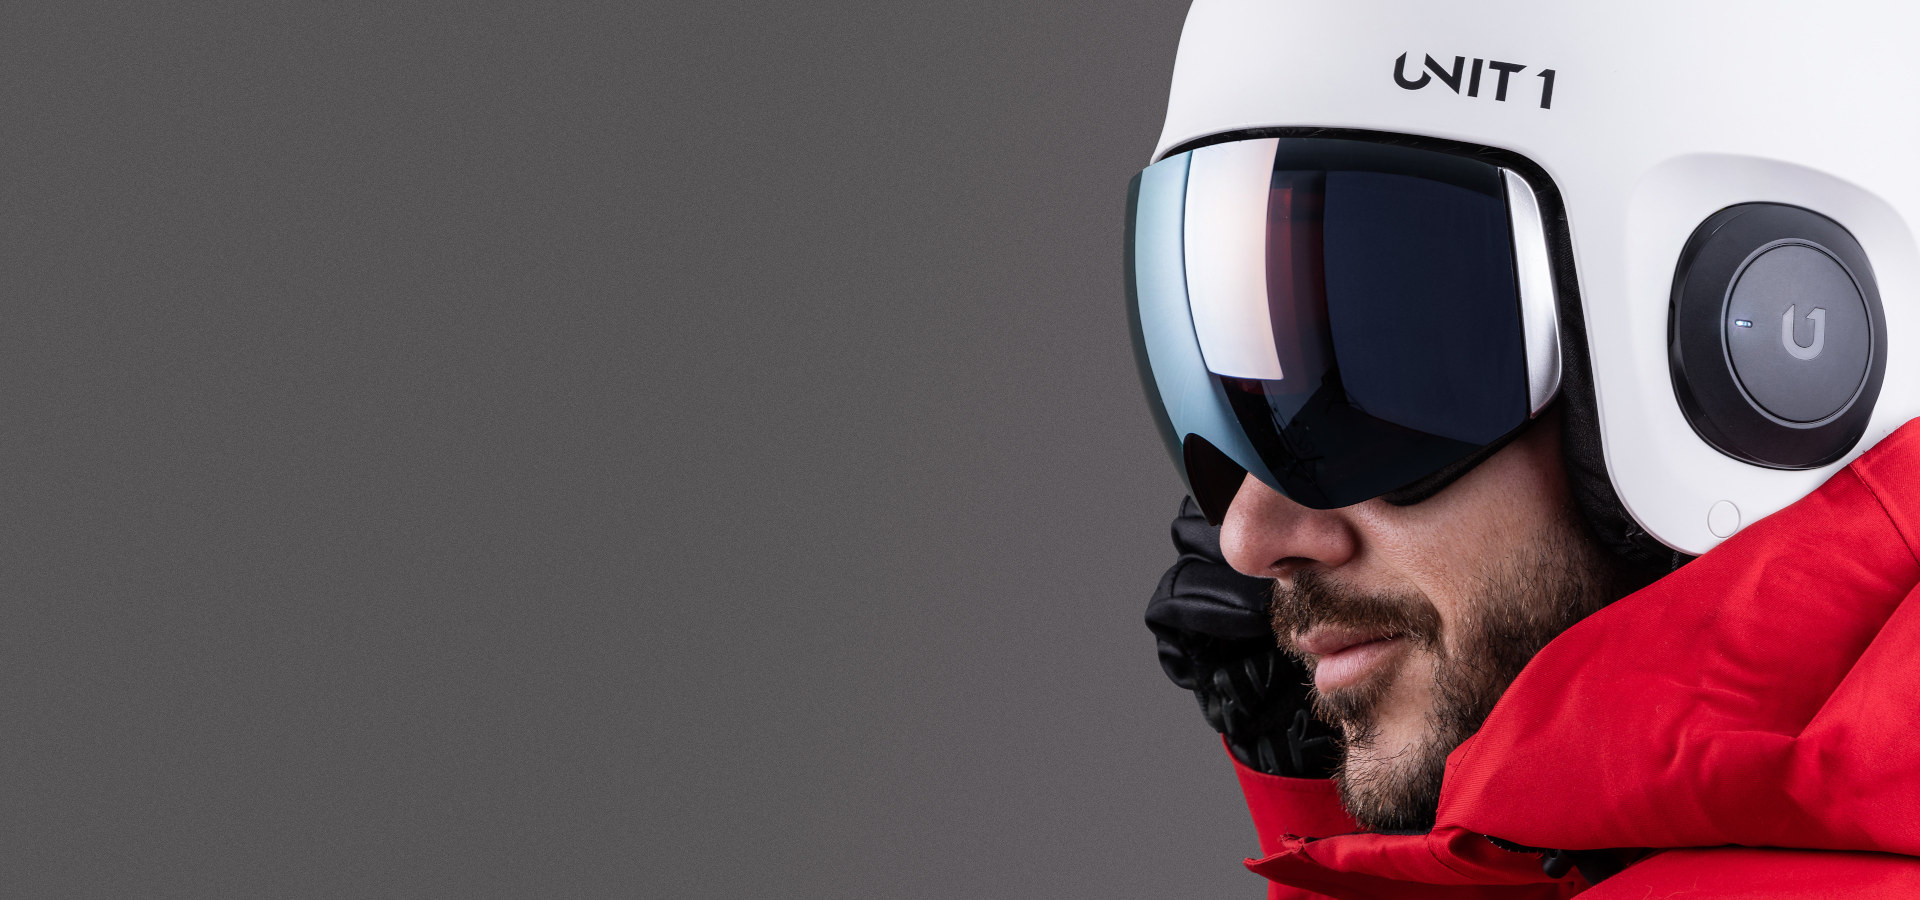 Unit 1 Ski Helment With Audio Speakers Headphone